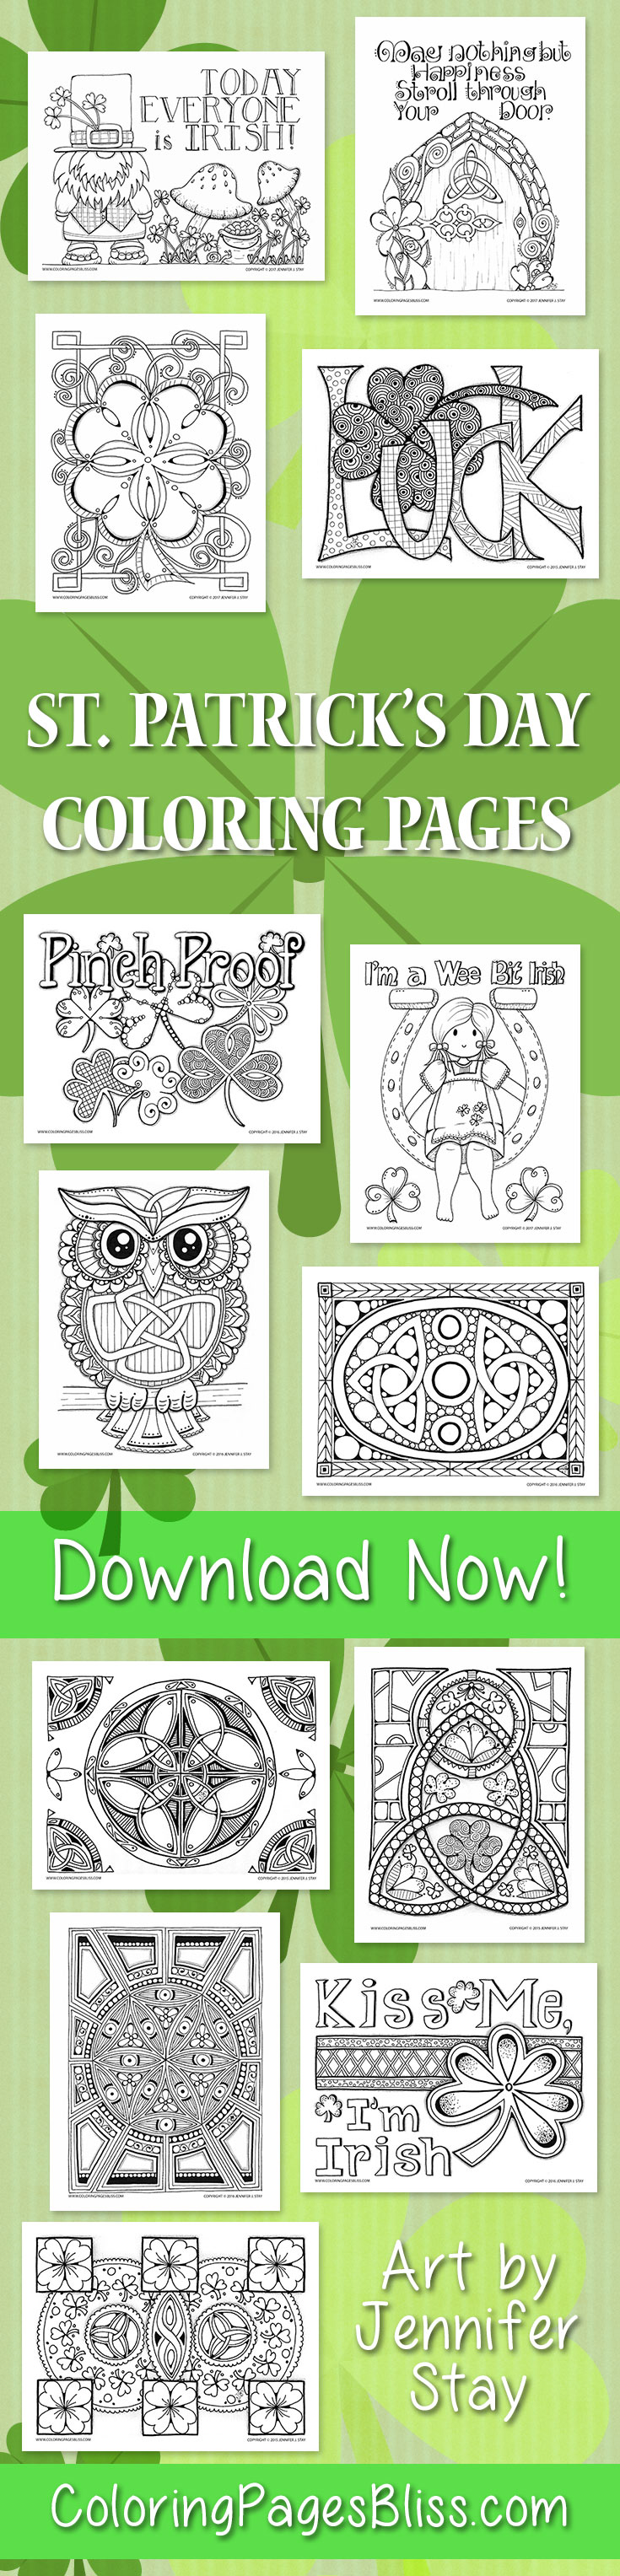 St. Patrick's Day Coloring Pages